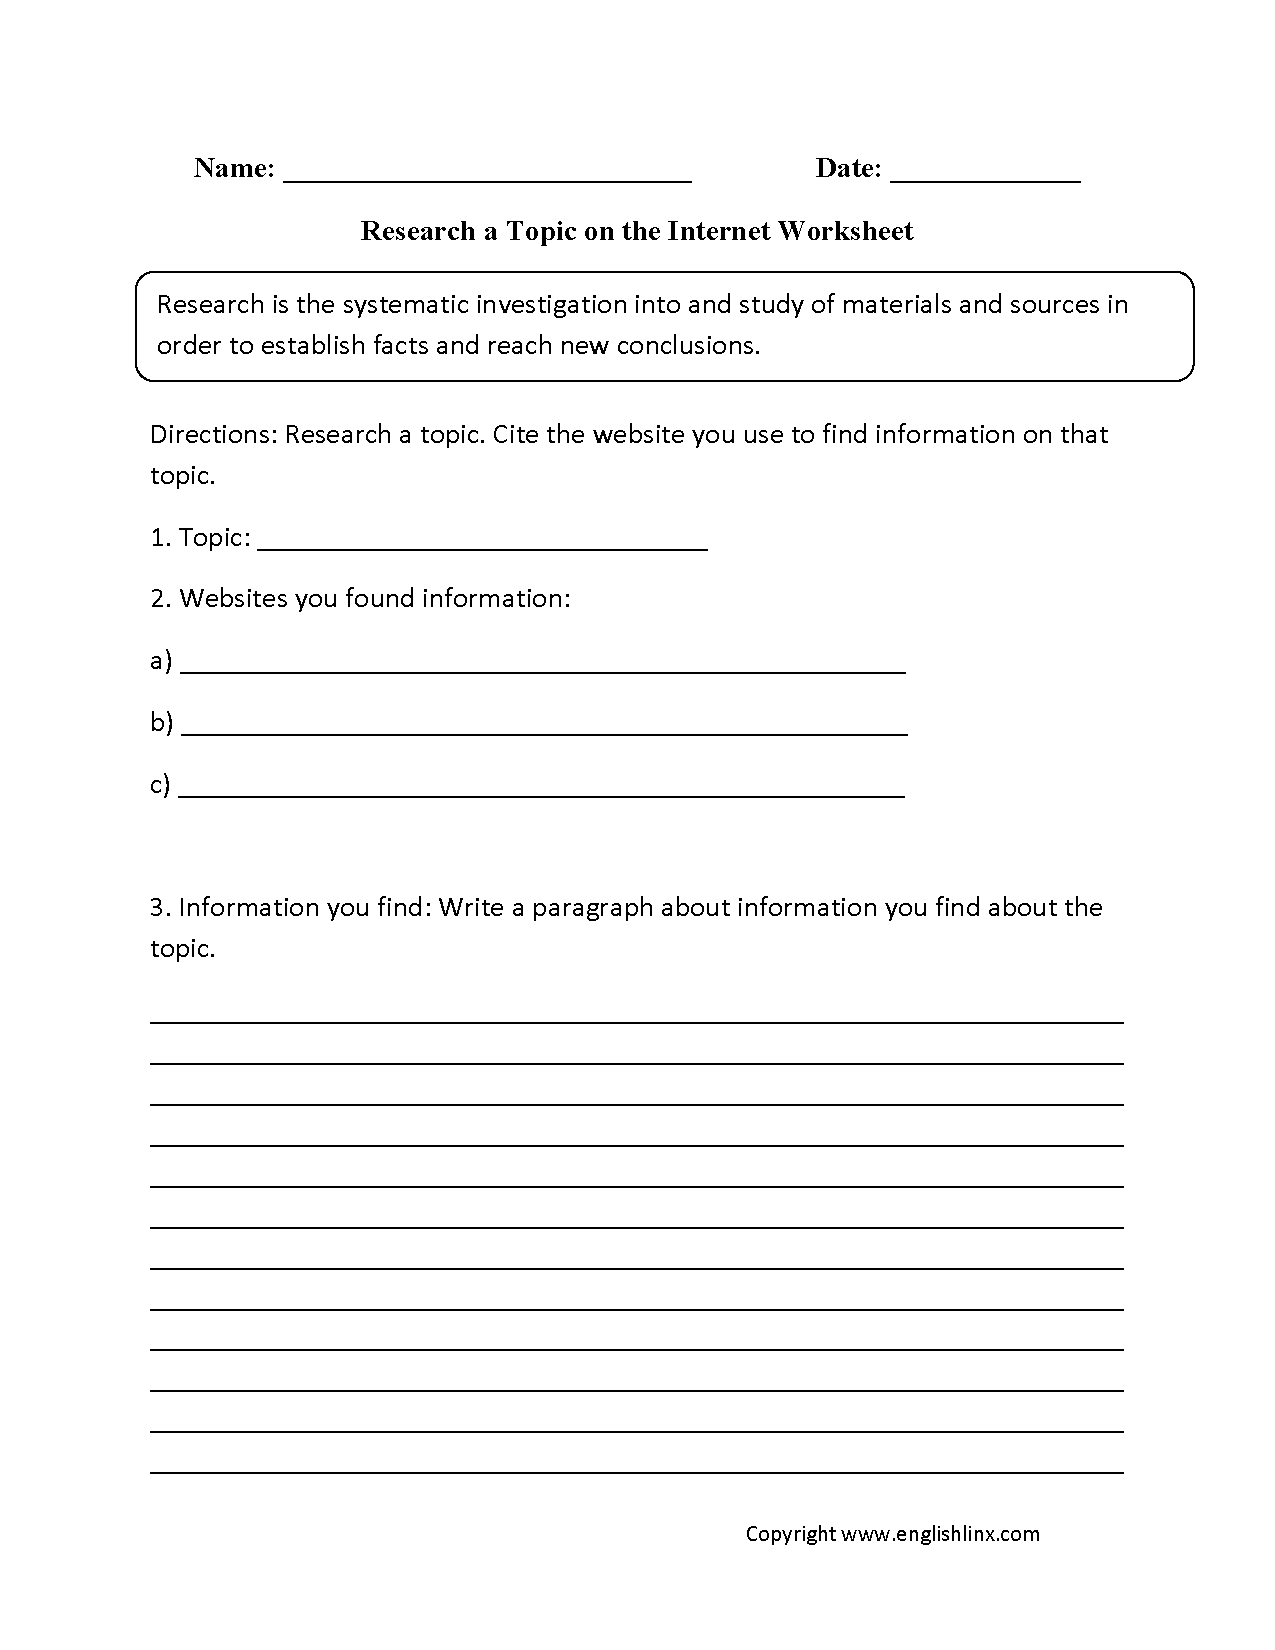 Aldiablosus  Scenic Englishlinxcom  Research Worksheets With Engaging On The Internet Worksheet With Divine Math Blaster Worksheets Also Nd Grade Skip Counting Worksheets In Addition  And  Dimensional Shapes Worksheets And Animal Habitat Worksheets For Nd Grade As Well As Revising And Editing Worksheets High School Additionally Algebraic Fractions Worksheets From Englishlinxcom With Aldiablosus  Engaging Englishlinxcom  Research Worksheets With Divine On The Internet Worksheet And Scenic Math Blaster Worksheets Also Nd Grade Skip Counting Worksheets In Addition  And  Dimensional Shapes Worksheets From Englishlinxcom